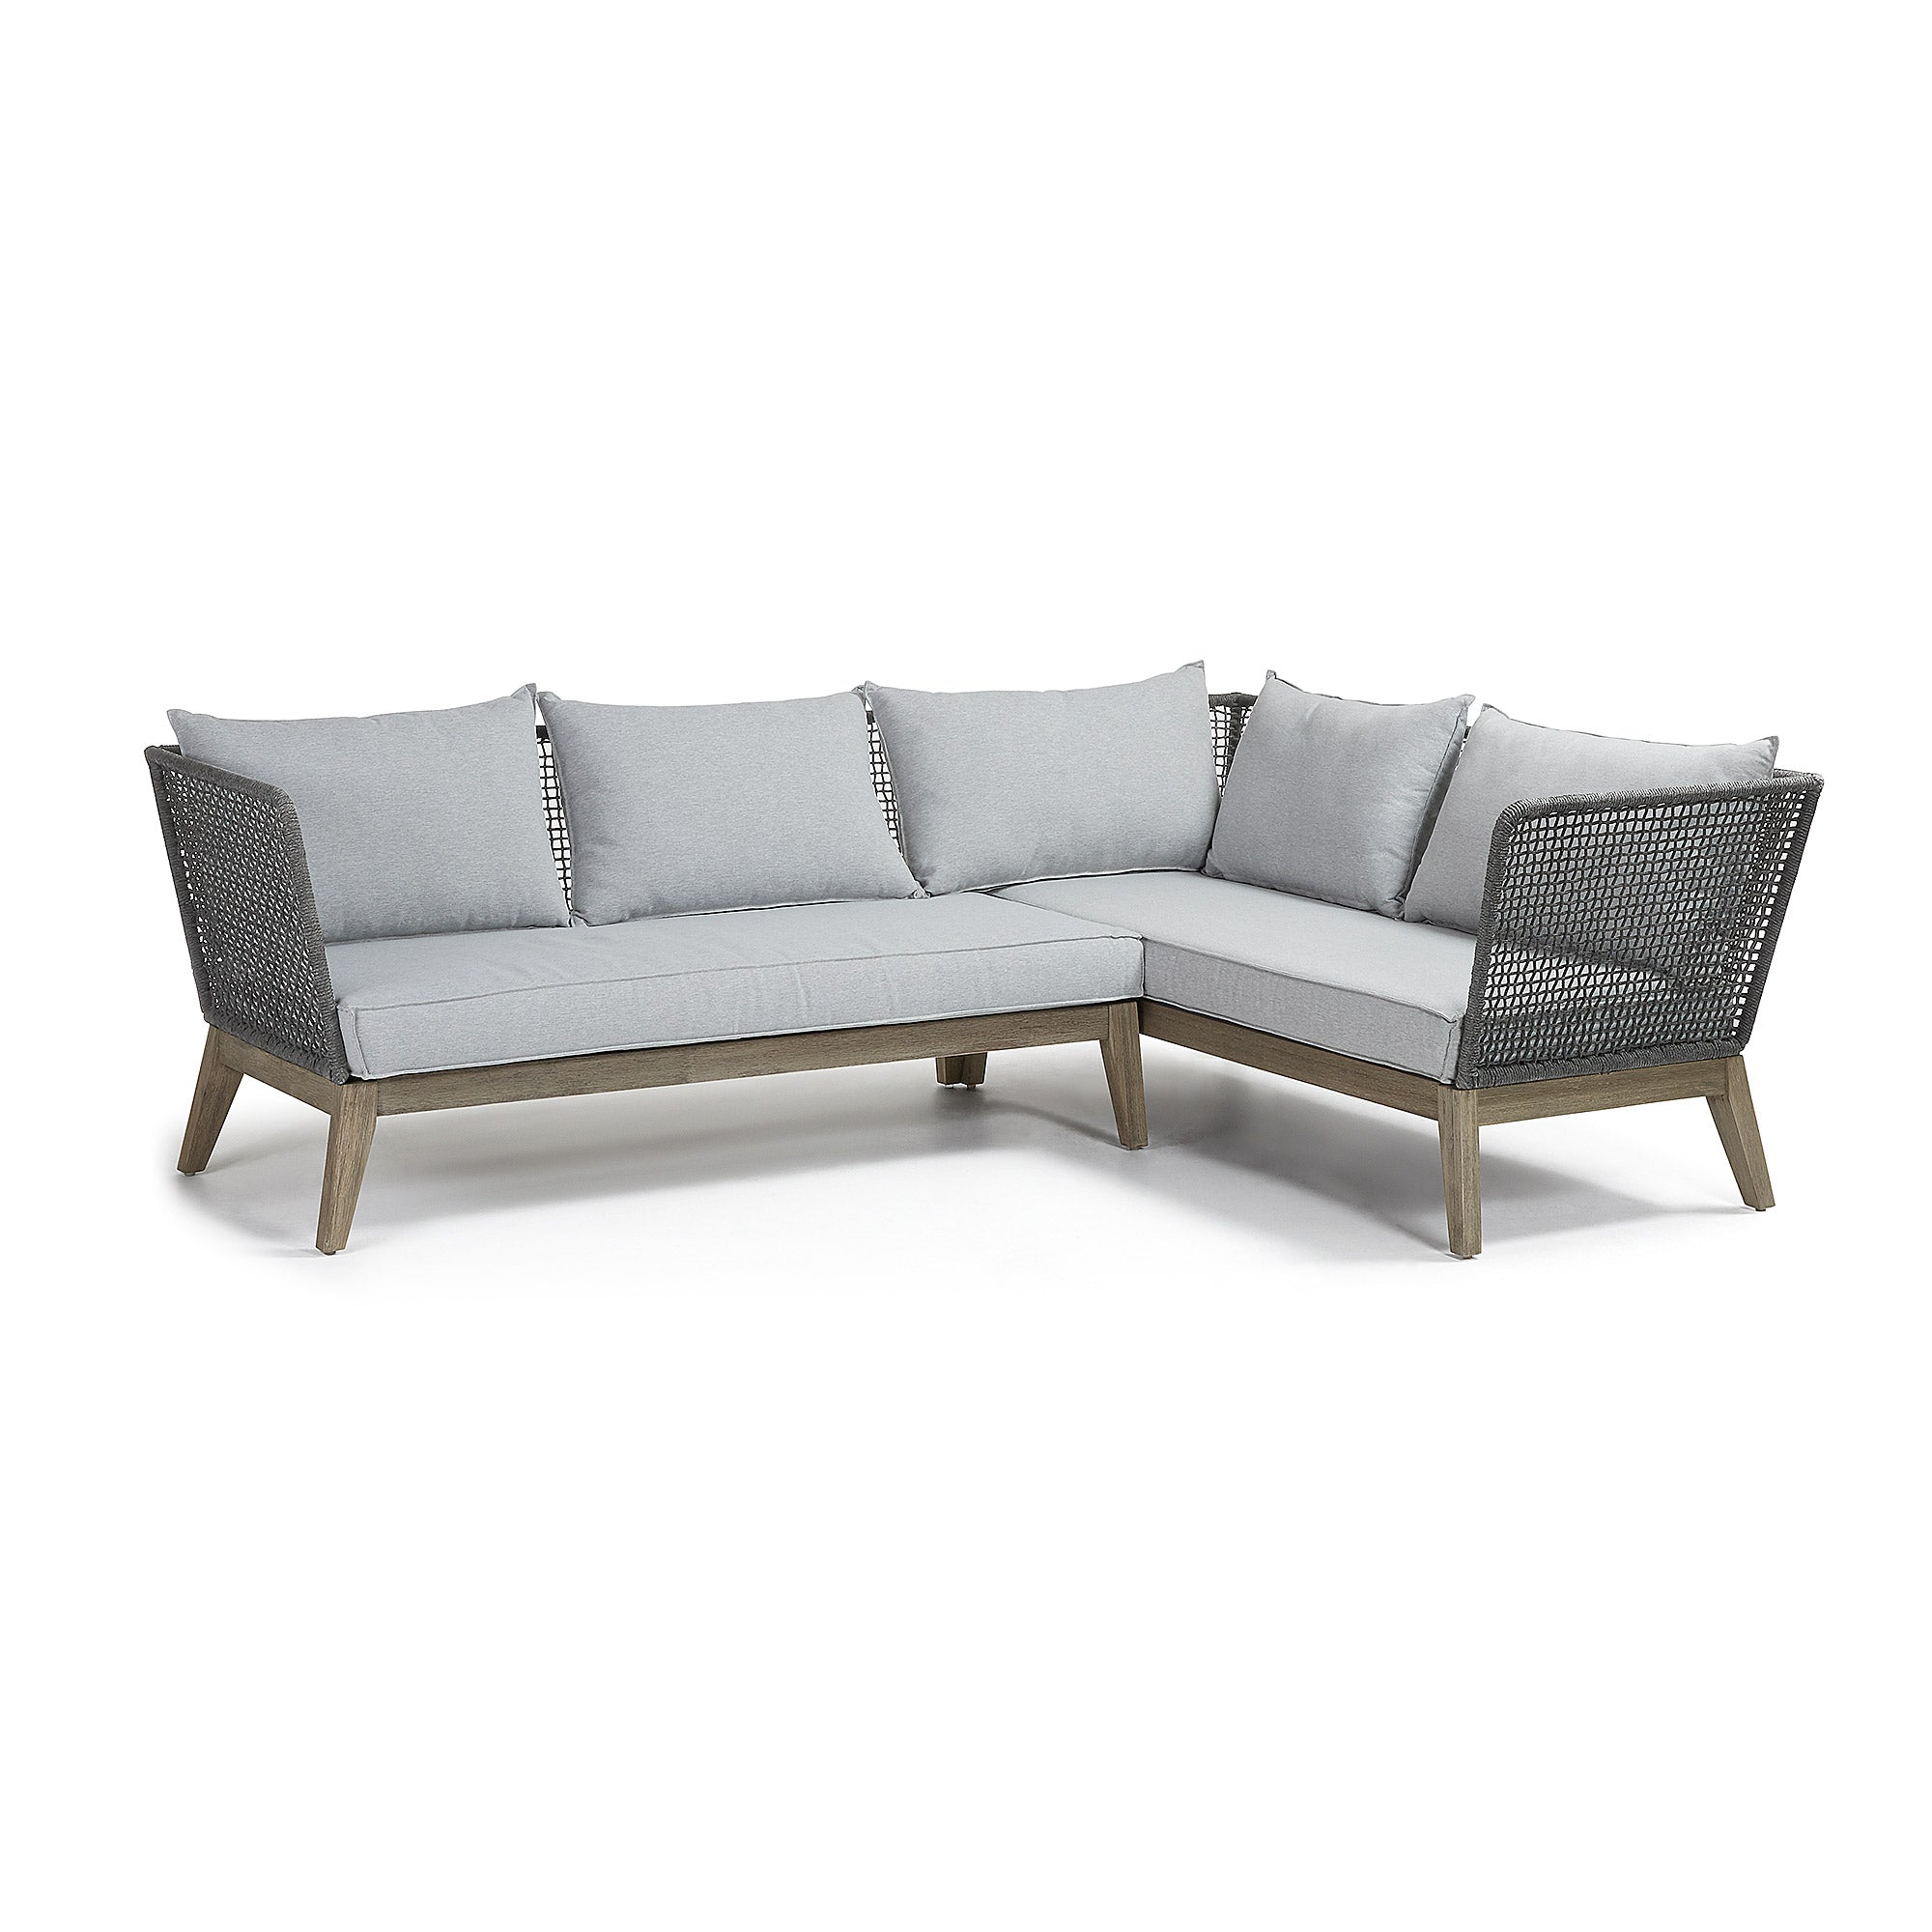 Gilson Modular Patio Sofa